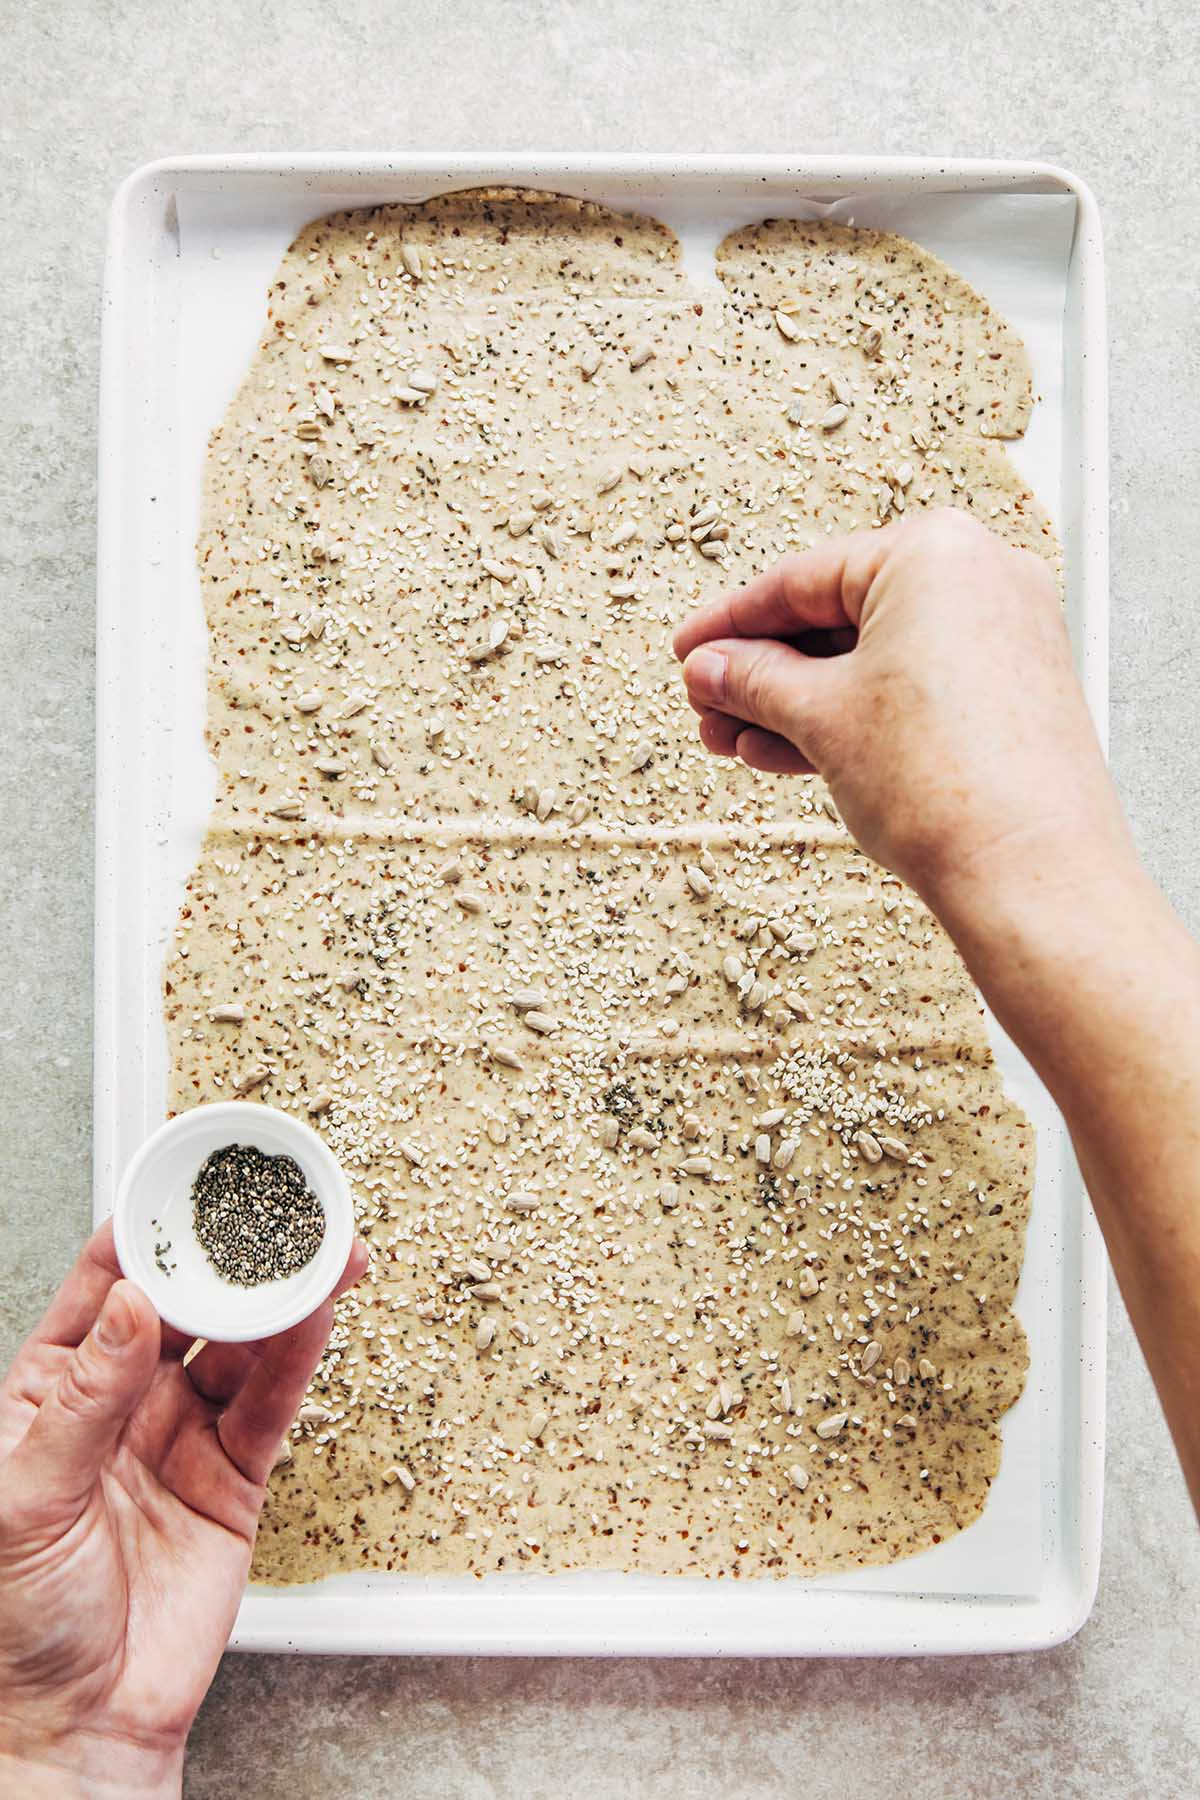 A hand sprinkling chia seeds from a small white bowl onto rolled cracker dough on a baking sheet.